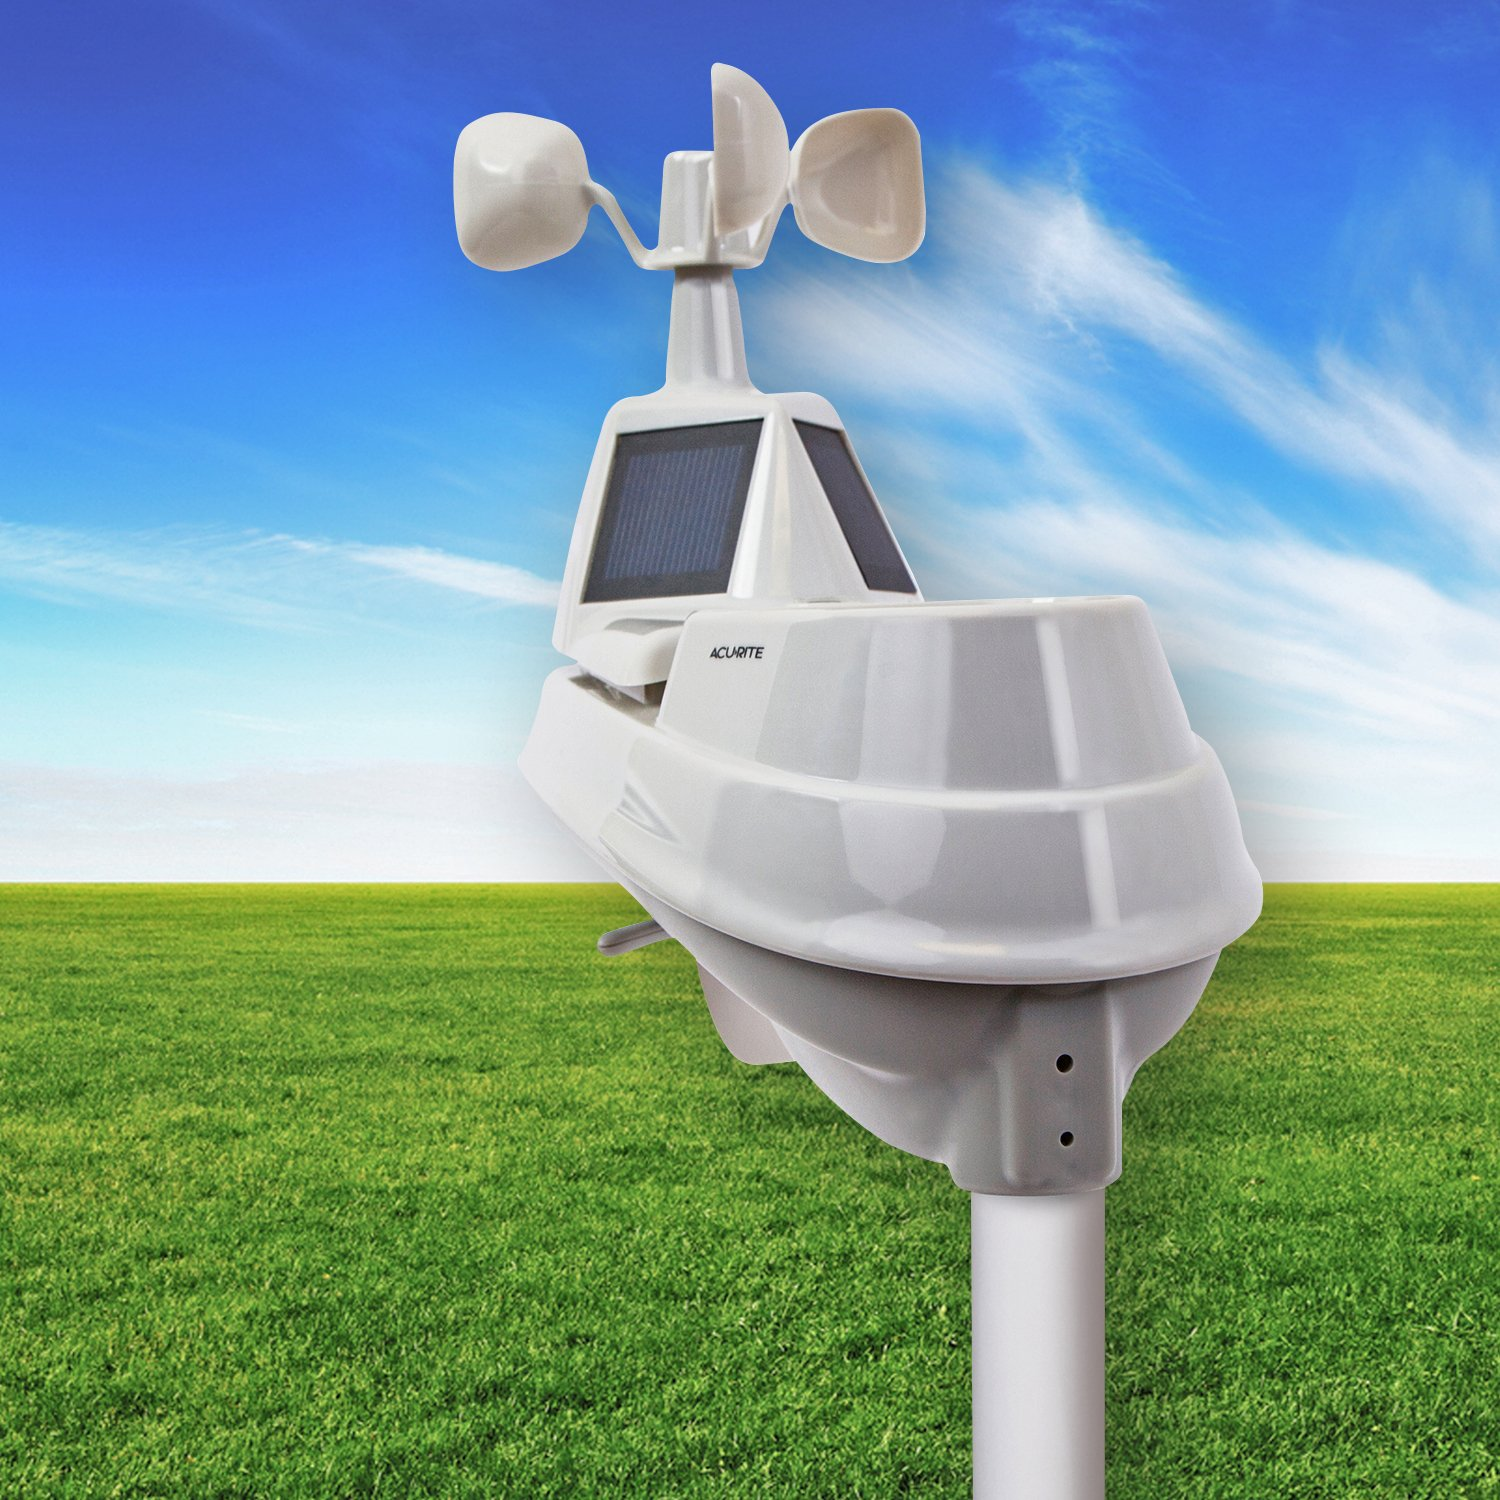 amazon com acurite pro color weather station with 5 in 1 sensor